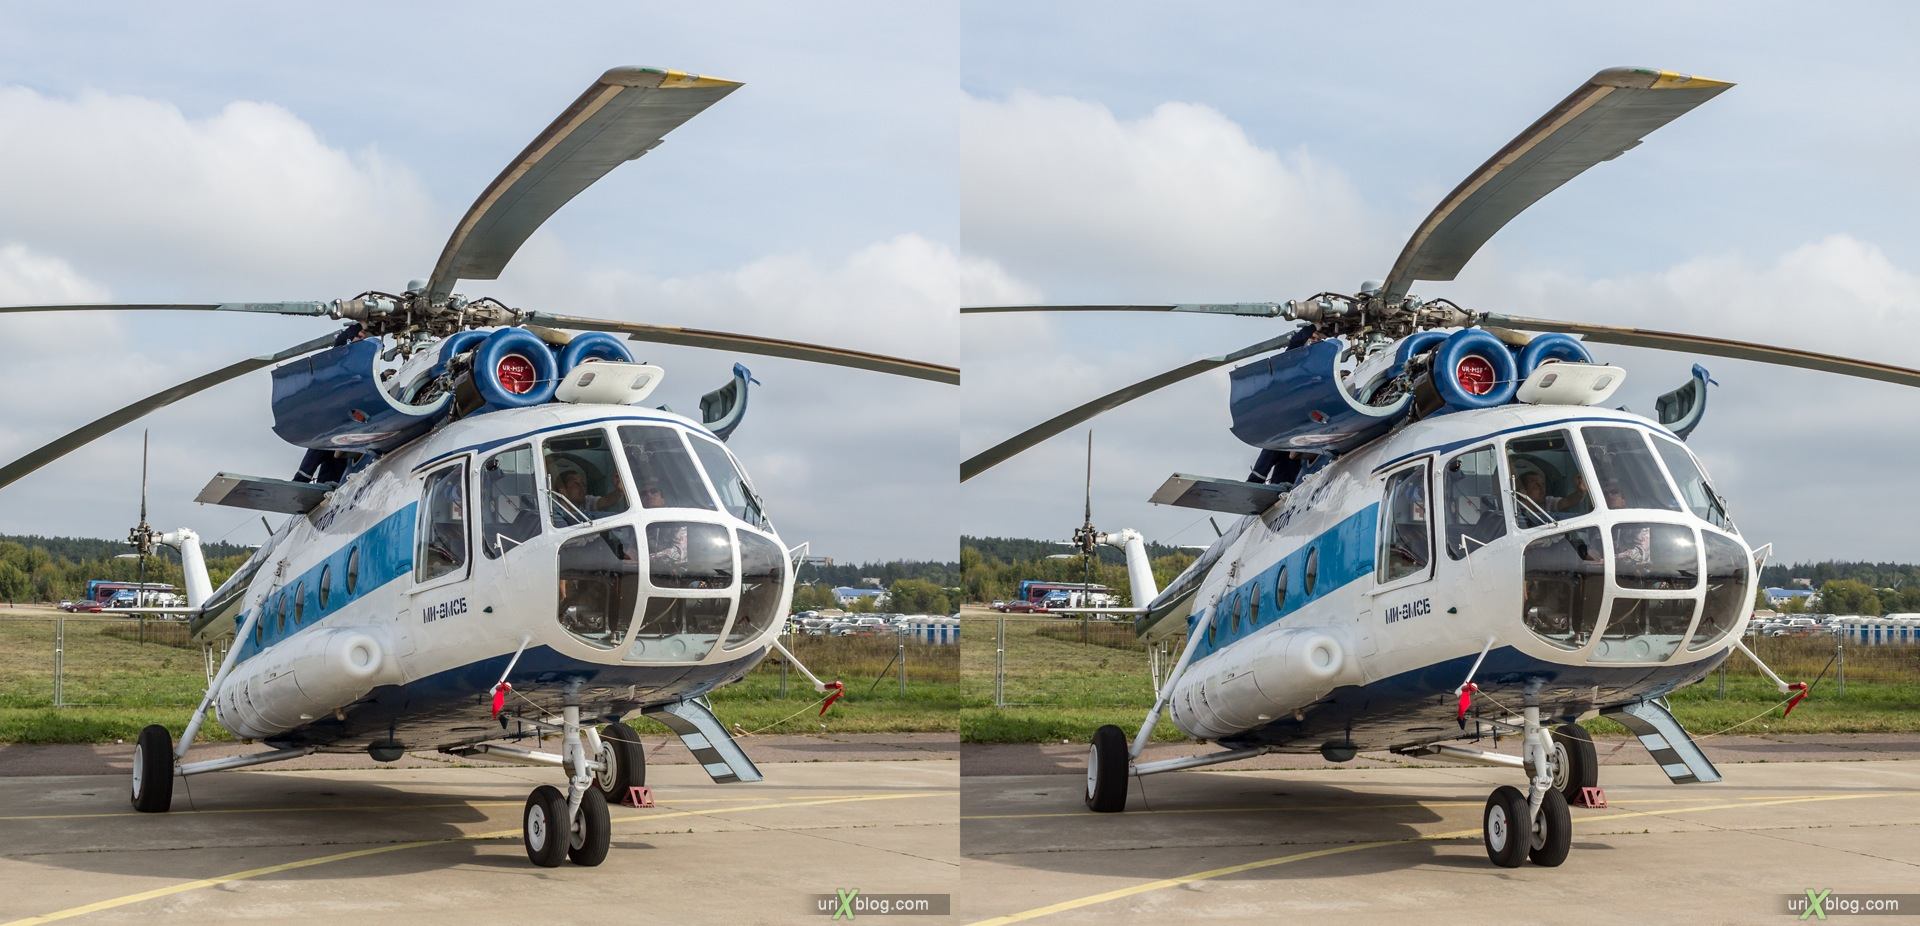 2013, MAKS, International Aviation and Space Salon, Russia, Ramenskoye airfield, Mi-8MSV, helicopter, 3D, stereo pair, cross-eyed, crossview, cross view stereo pair, stereoscopic